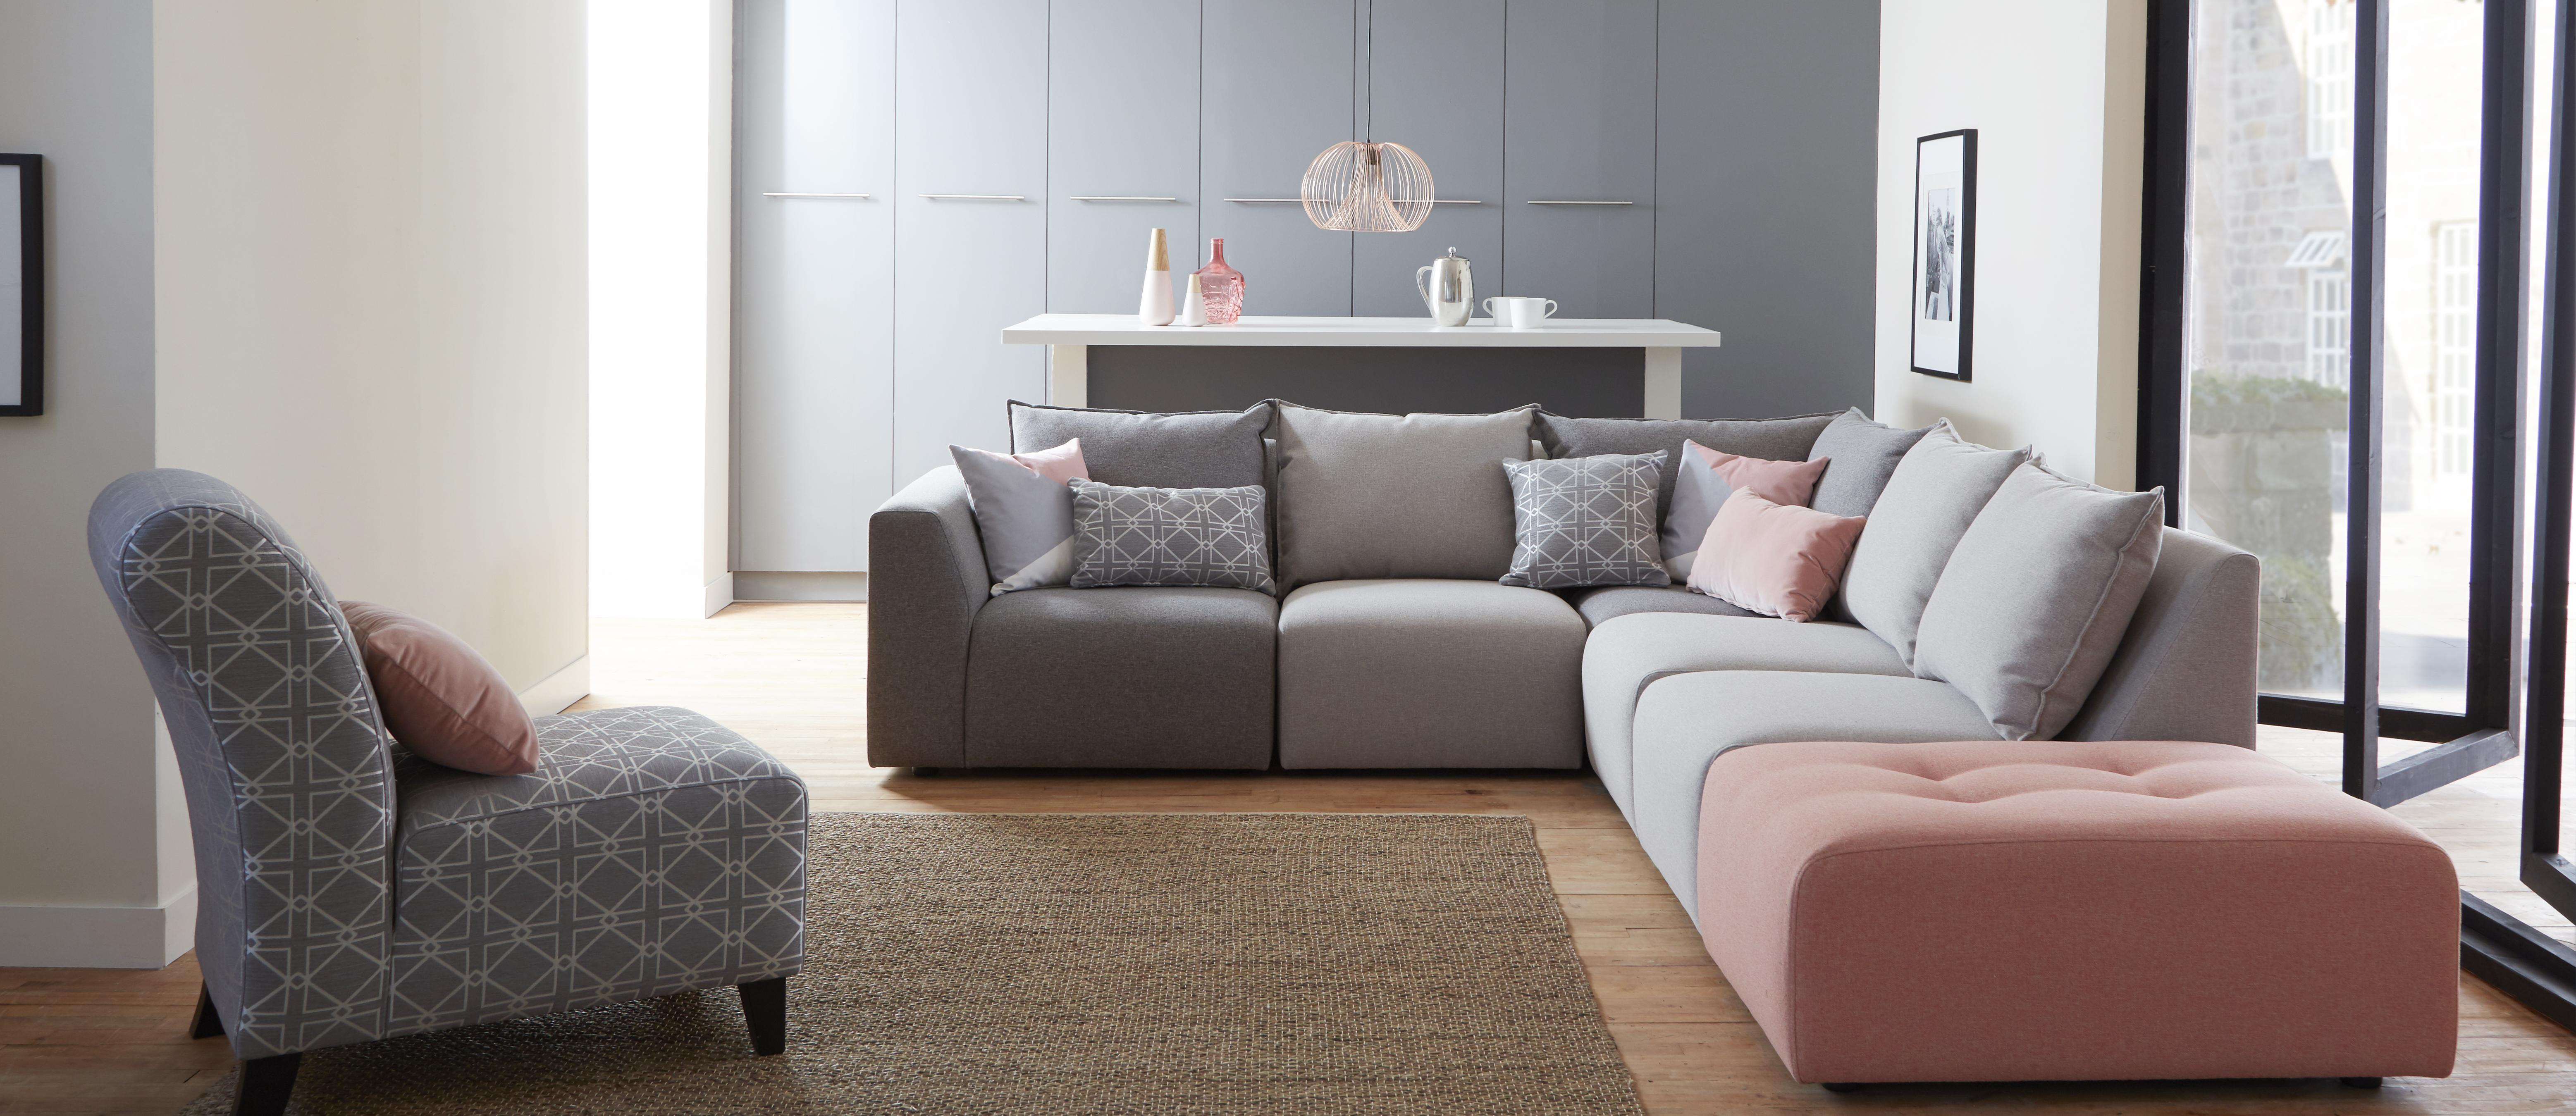 Modular sofas dfs Www multiyork co uk living room furniture